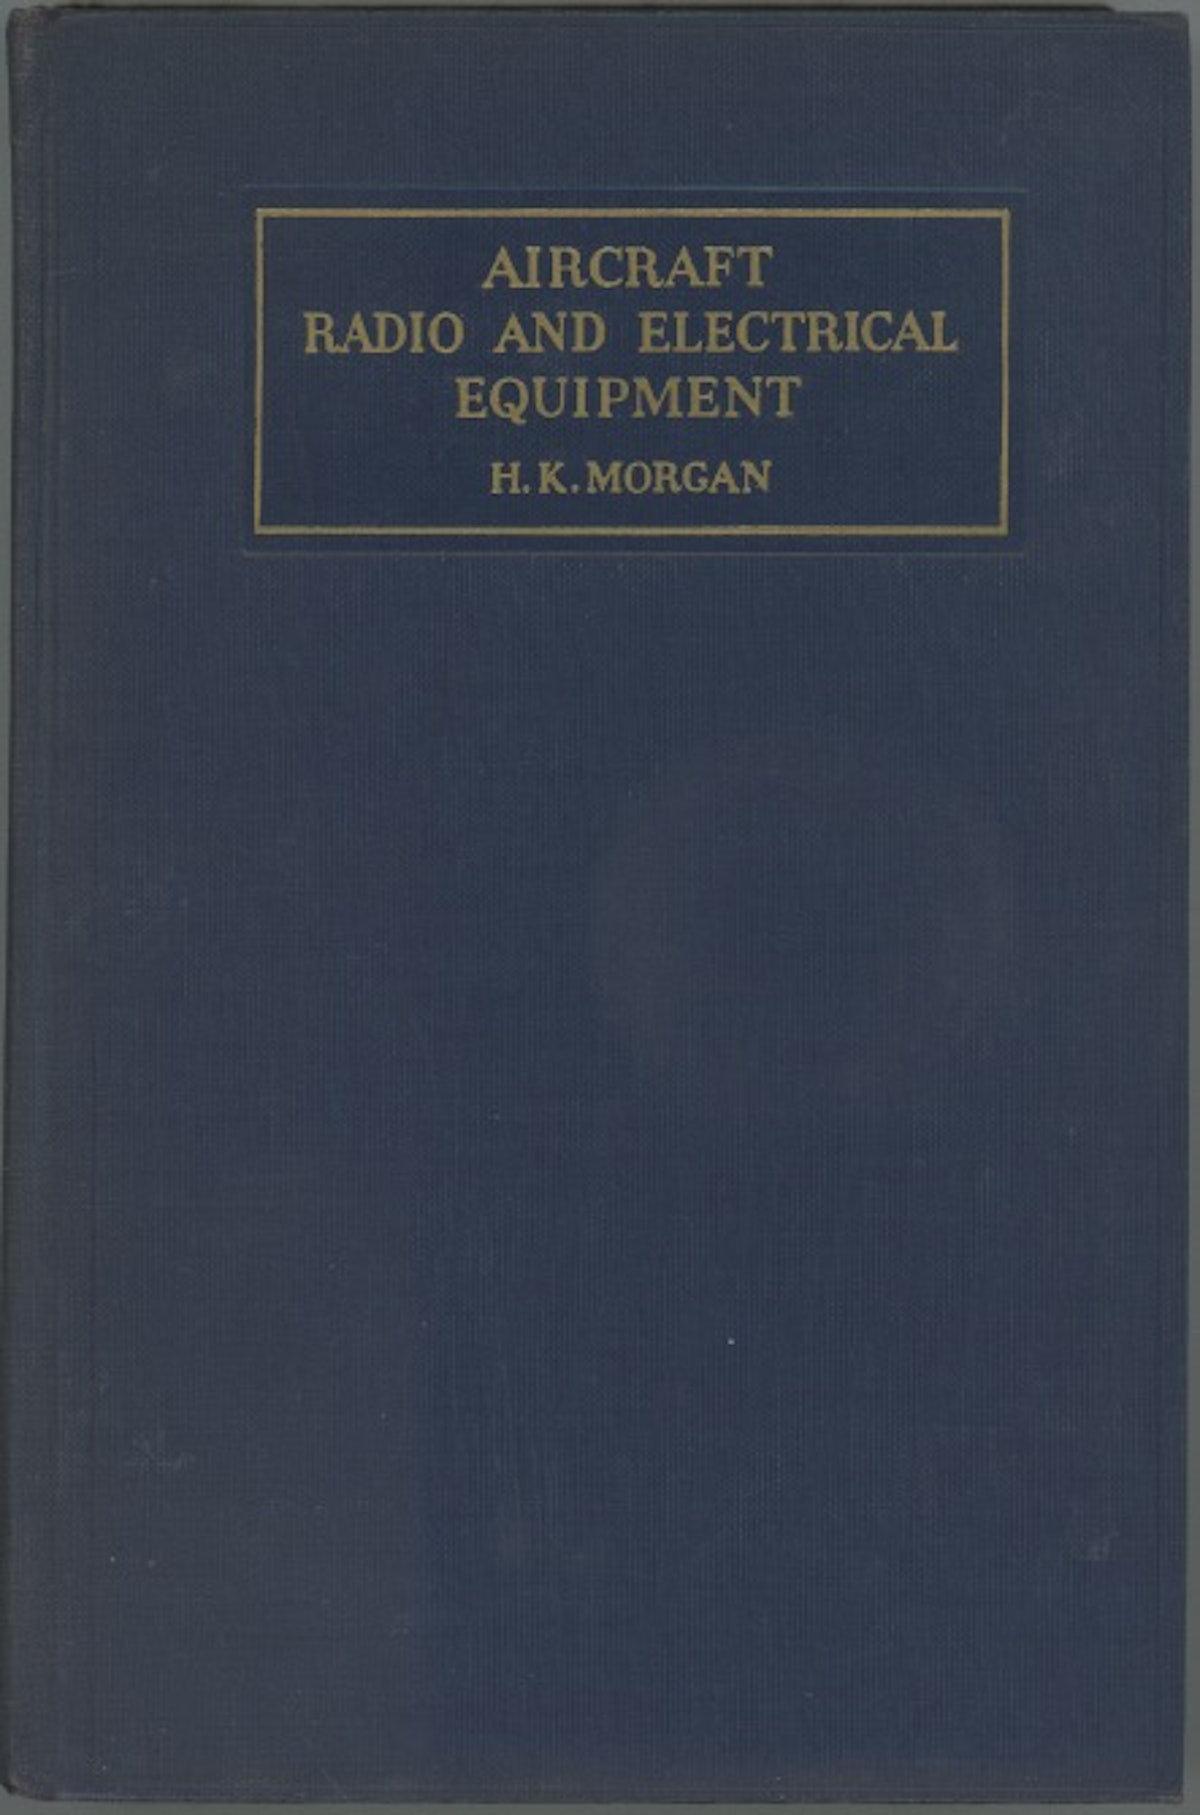 Aircraft Radio and Electrical Equipment